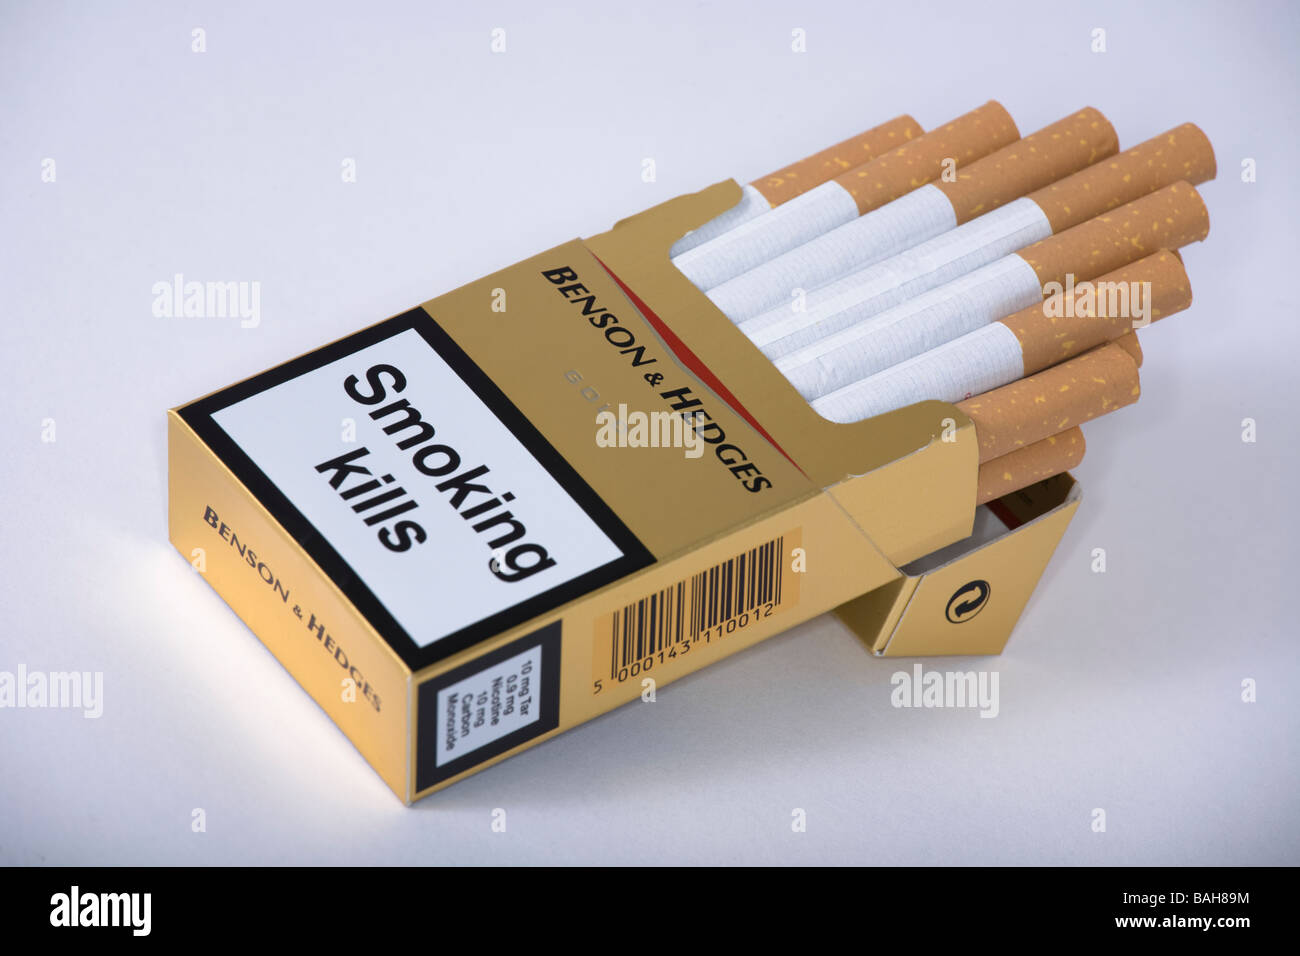 How much are Marlboro in UK